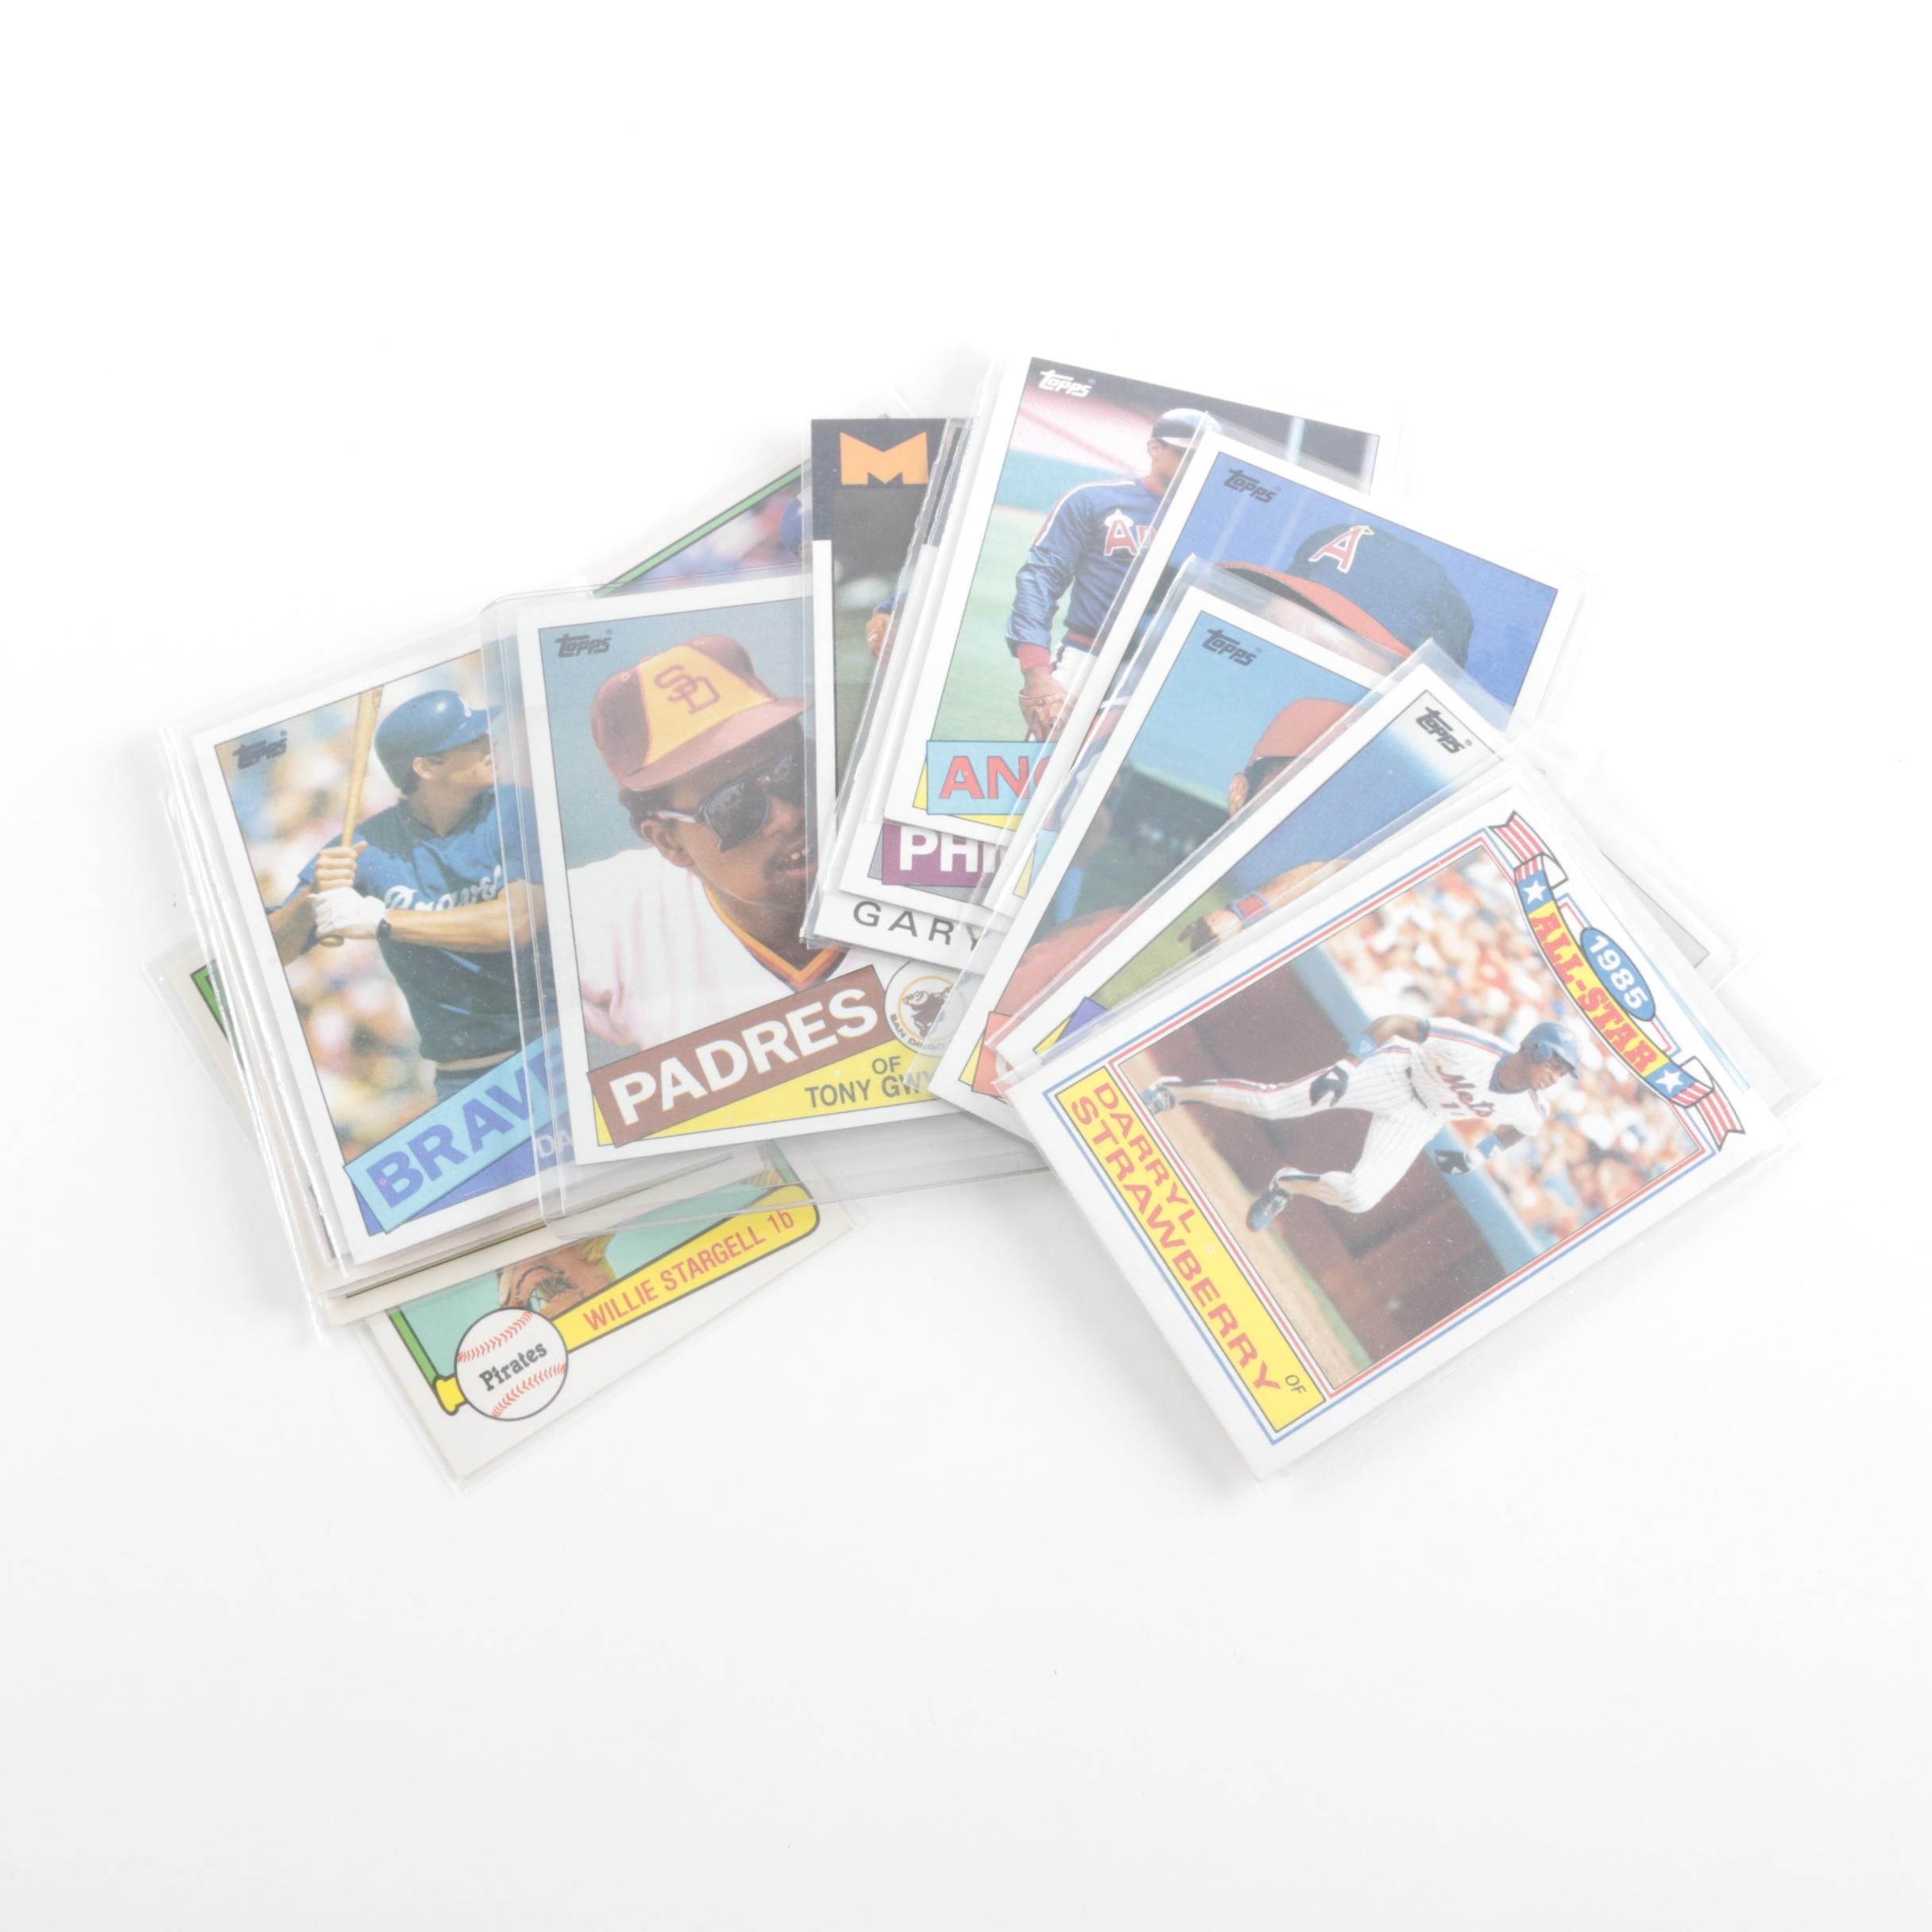 MLB Card Collection Including Orel Hershiser Rookie